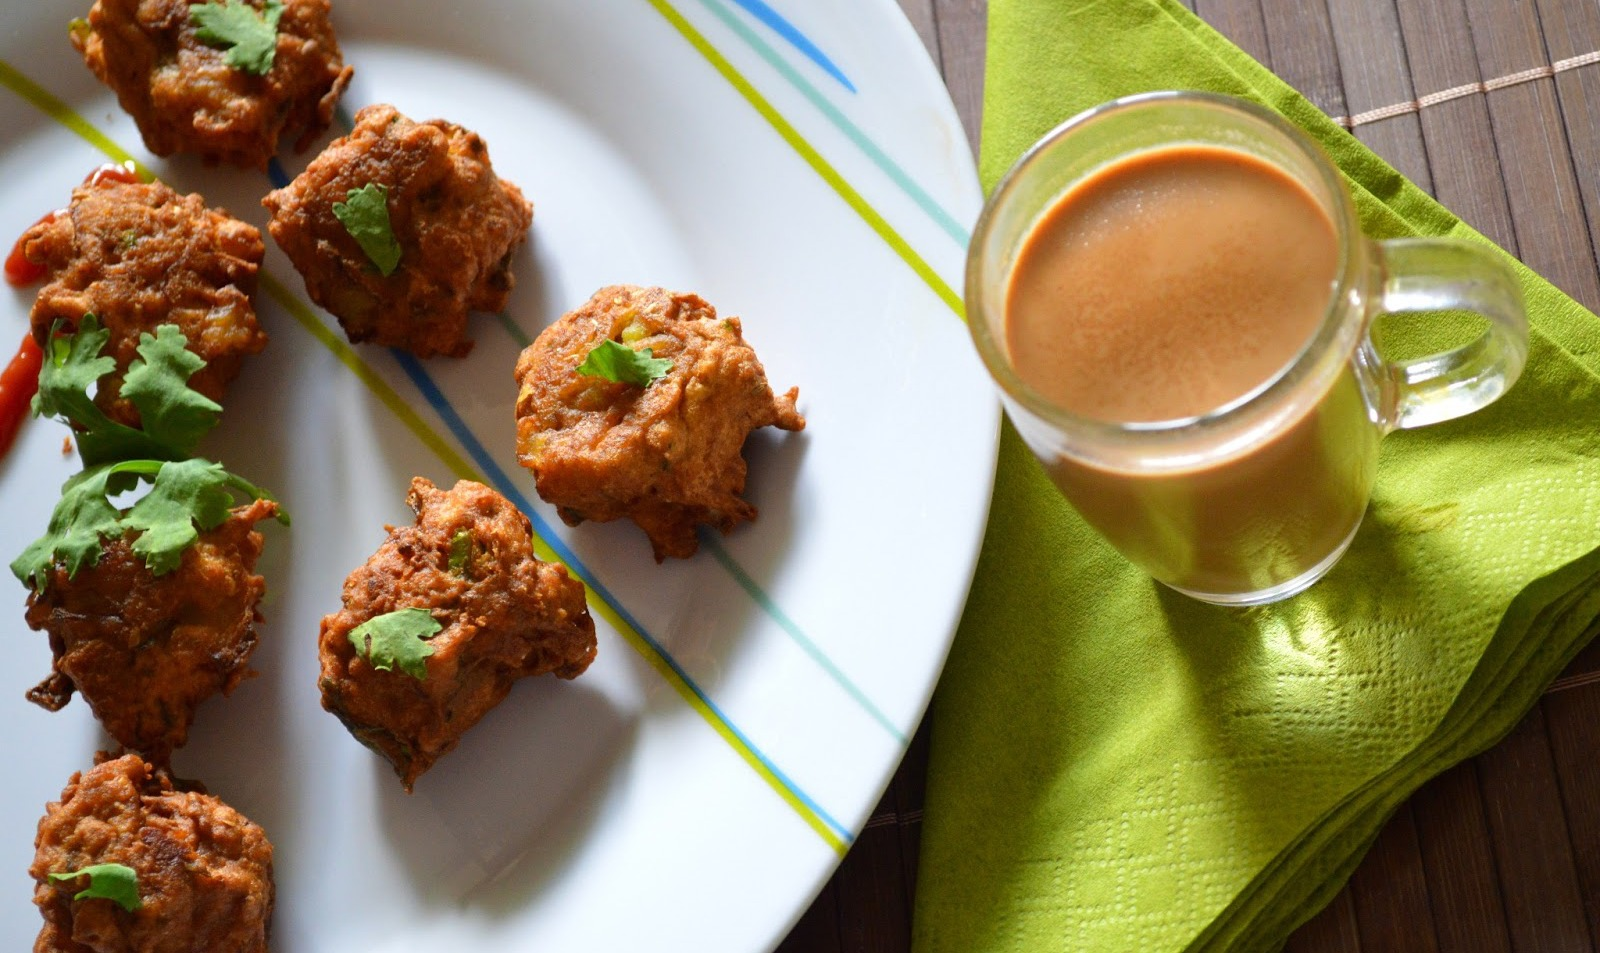 aaloo pakoda with chai